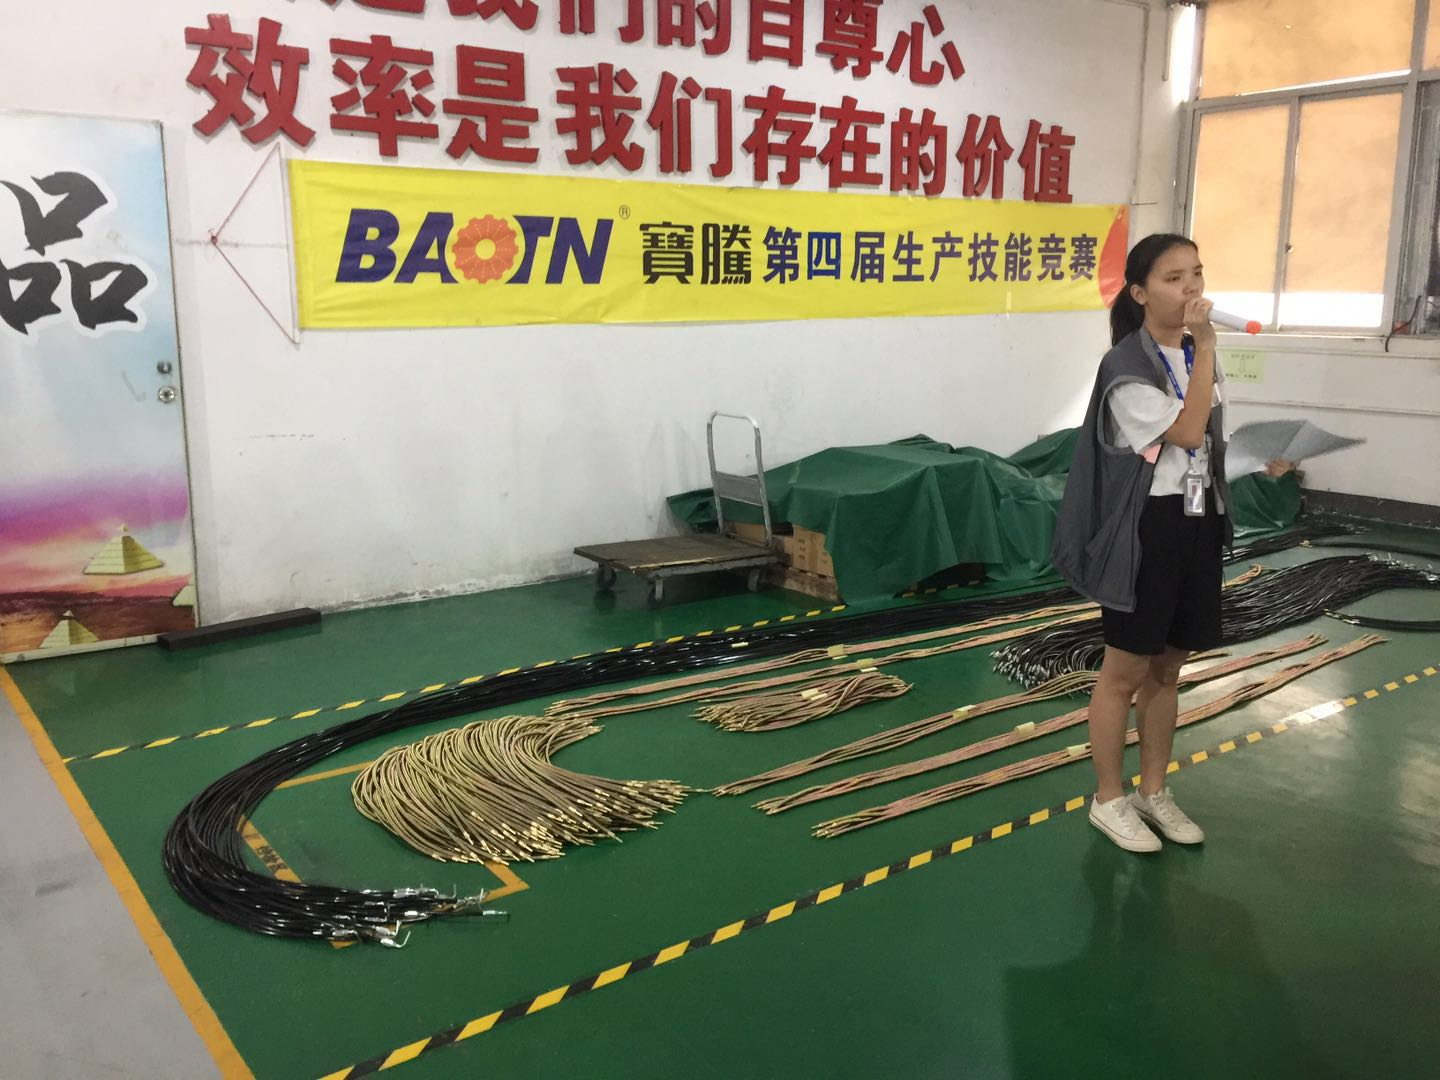 BAOTN——Production skills competition